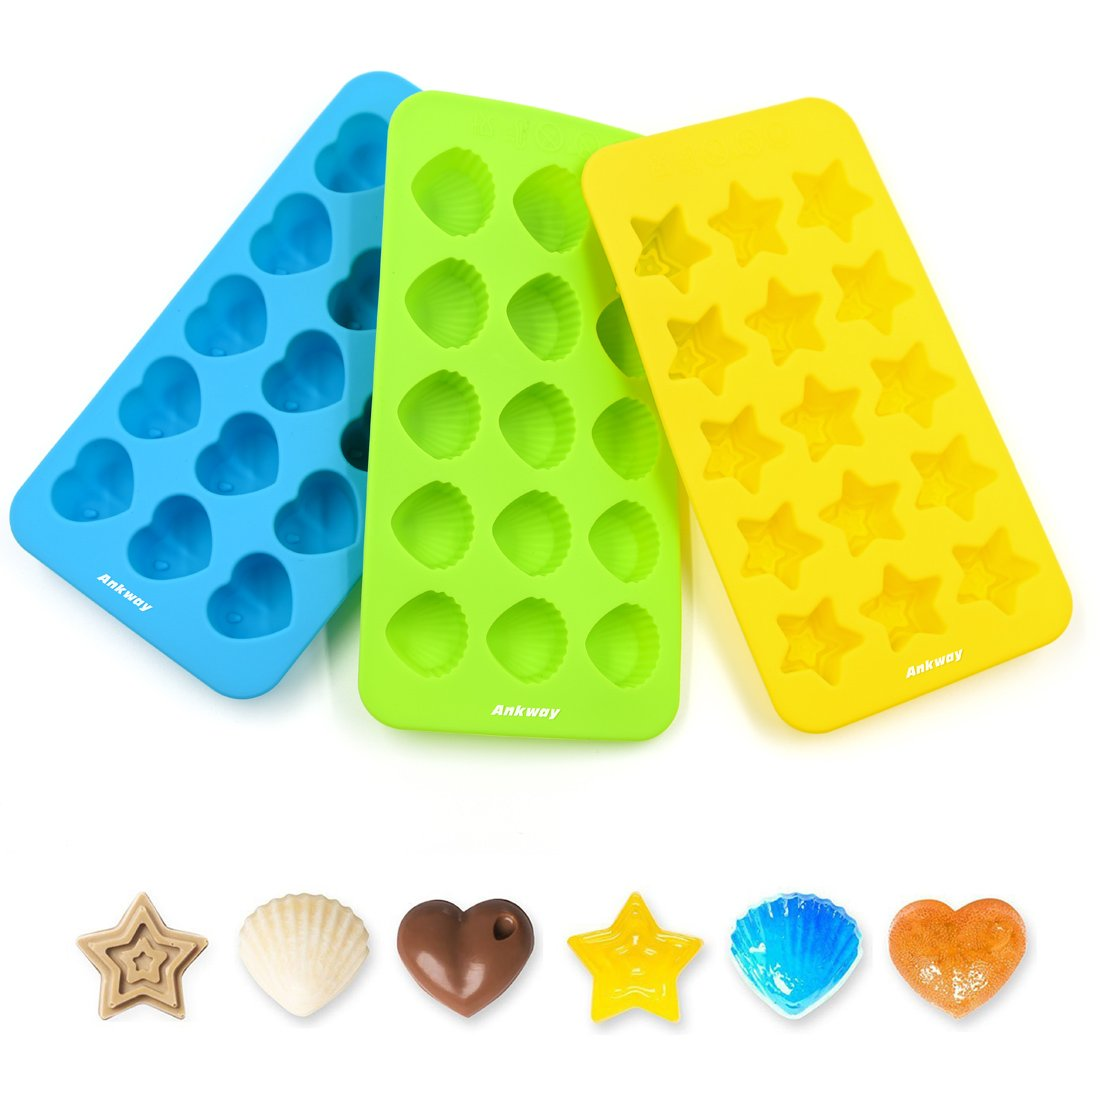 Silicone Chocolate Molds & Candy Molds - Ankway Set of 3 Non Stick BPA Free Small Flexible Hearts, Stars & Shells Baking Wax Molds Silicone Ice Cube Trays Mini Ice Maker Molds(15 Cups) by Ankway